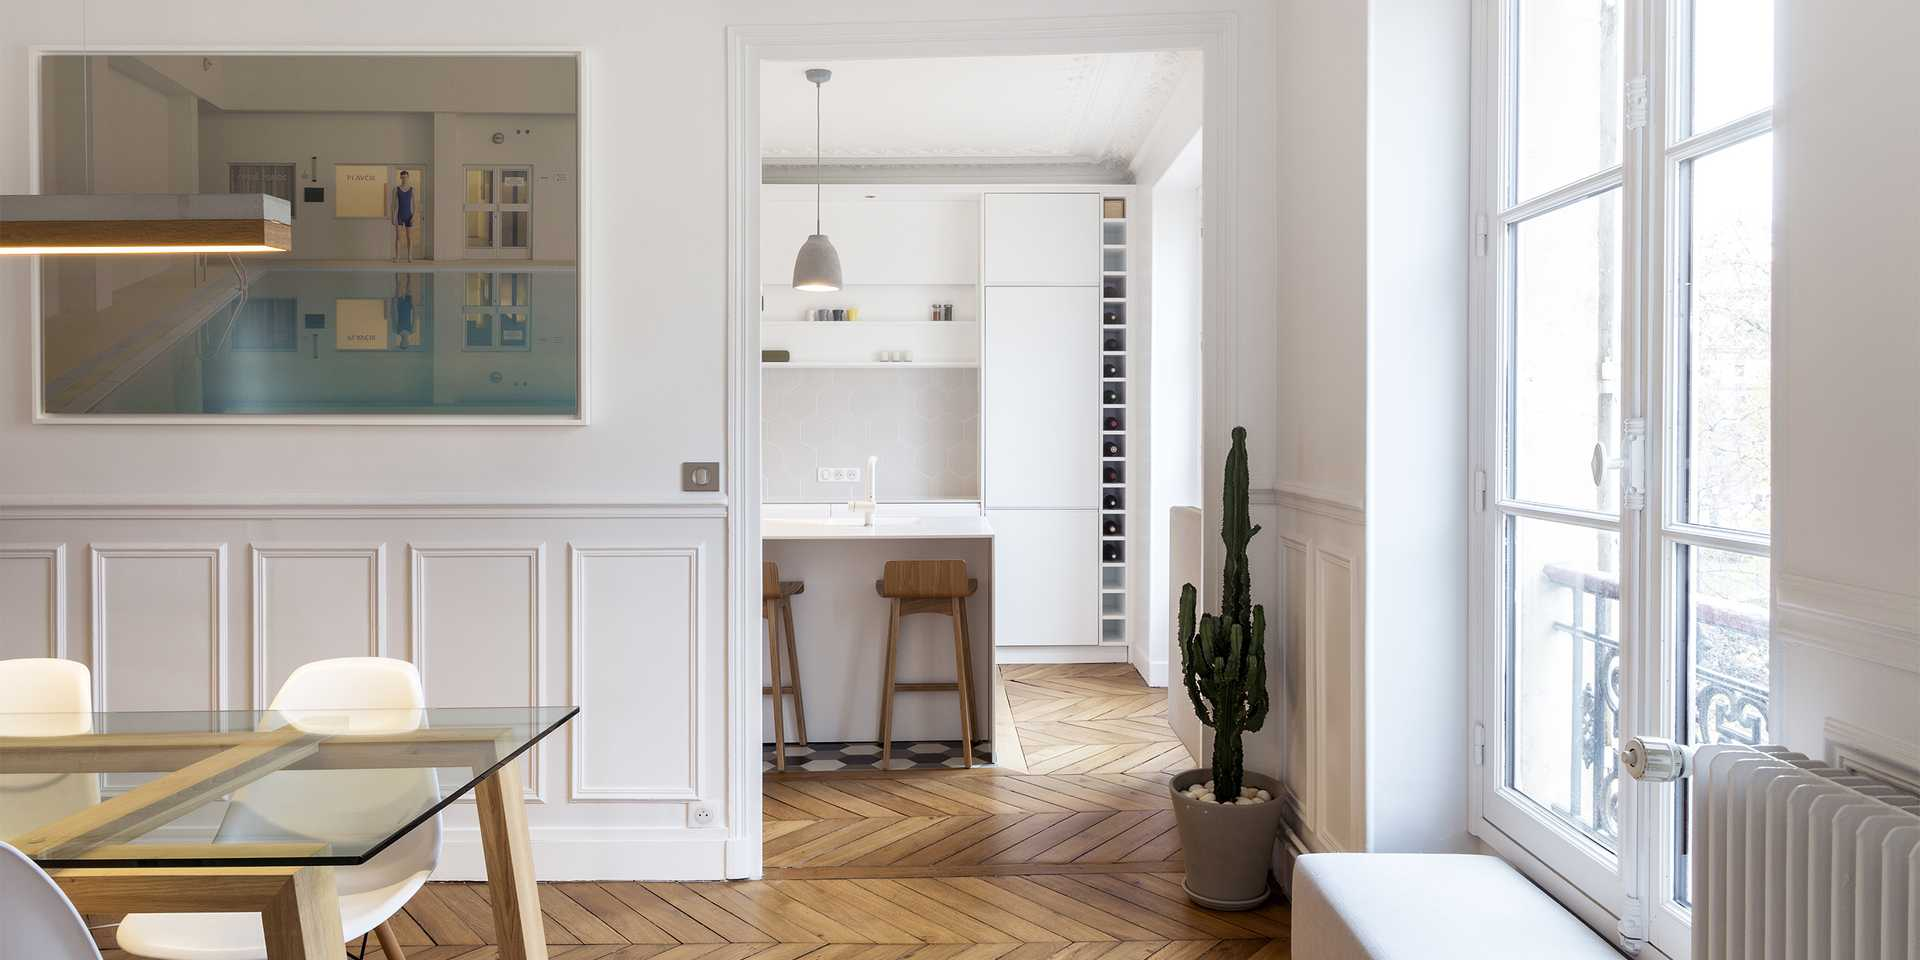 Haussmannian apartment redesigned by an architect in Brussels